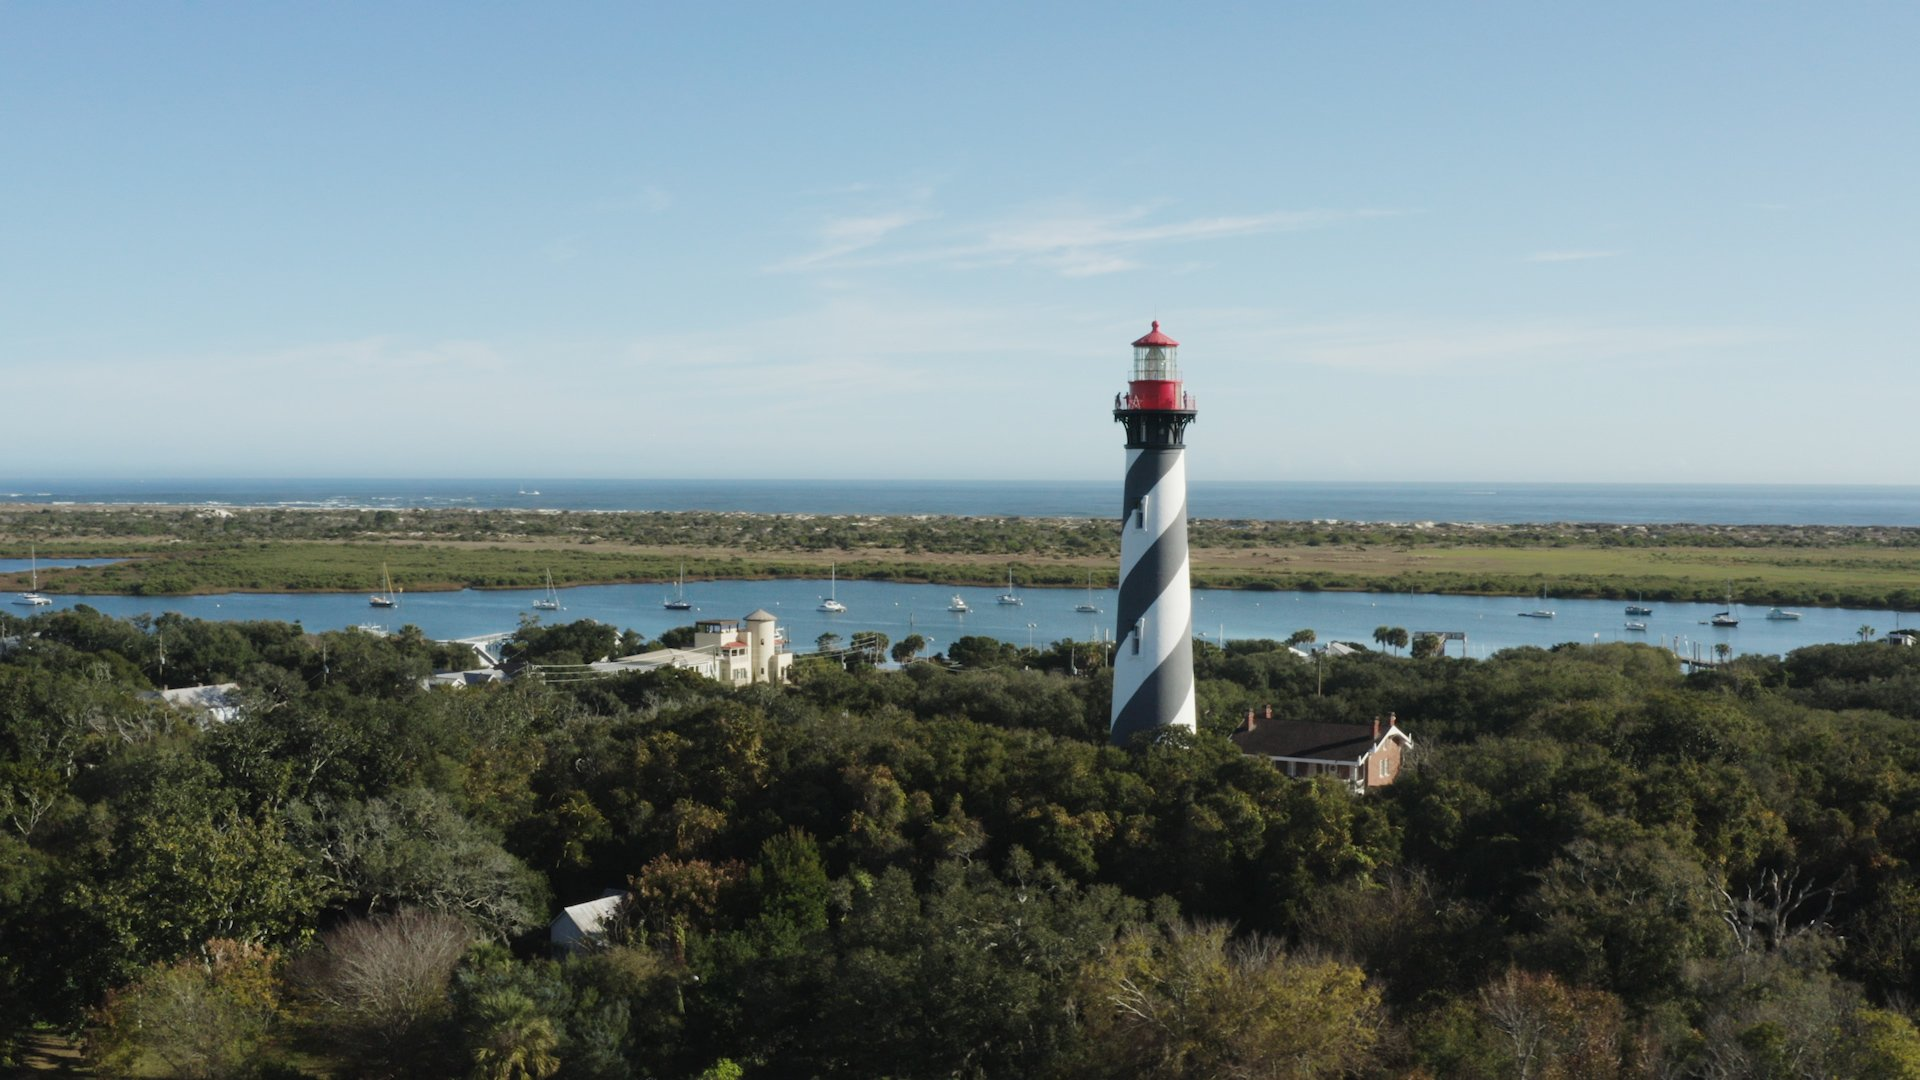 A view of the St. Augustine ligthouse